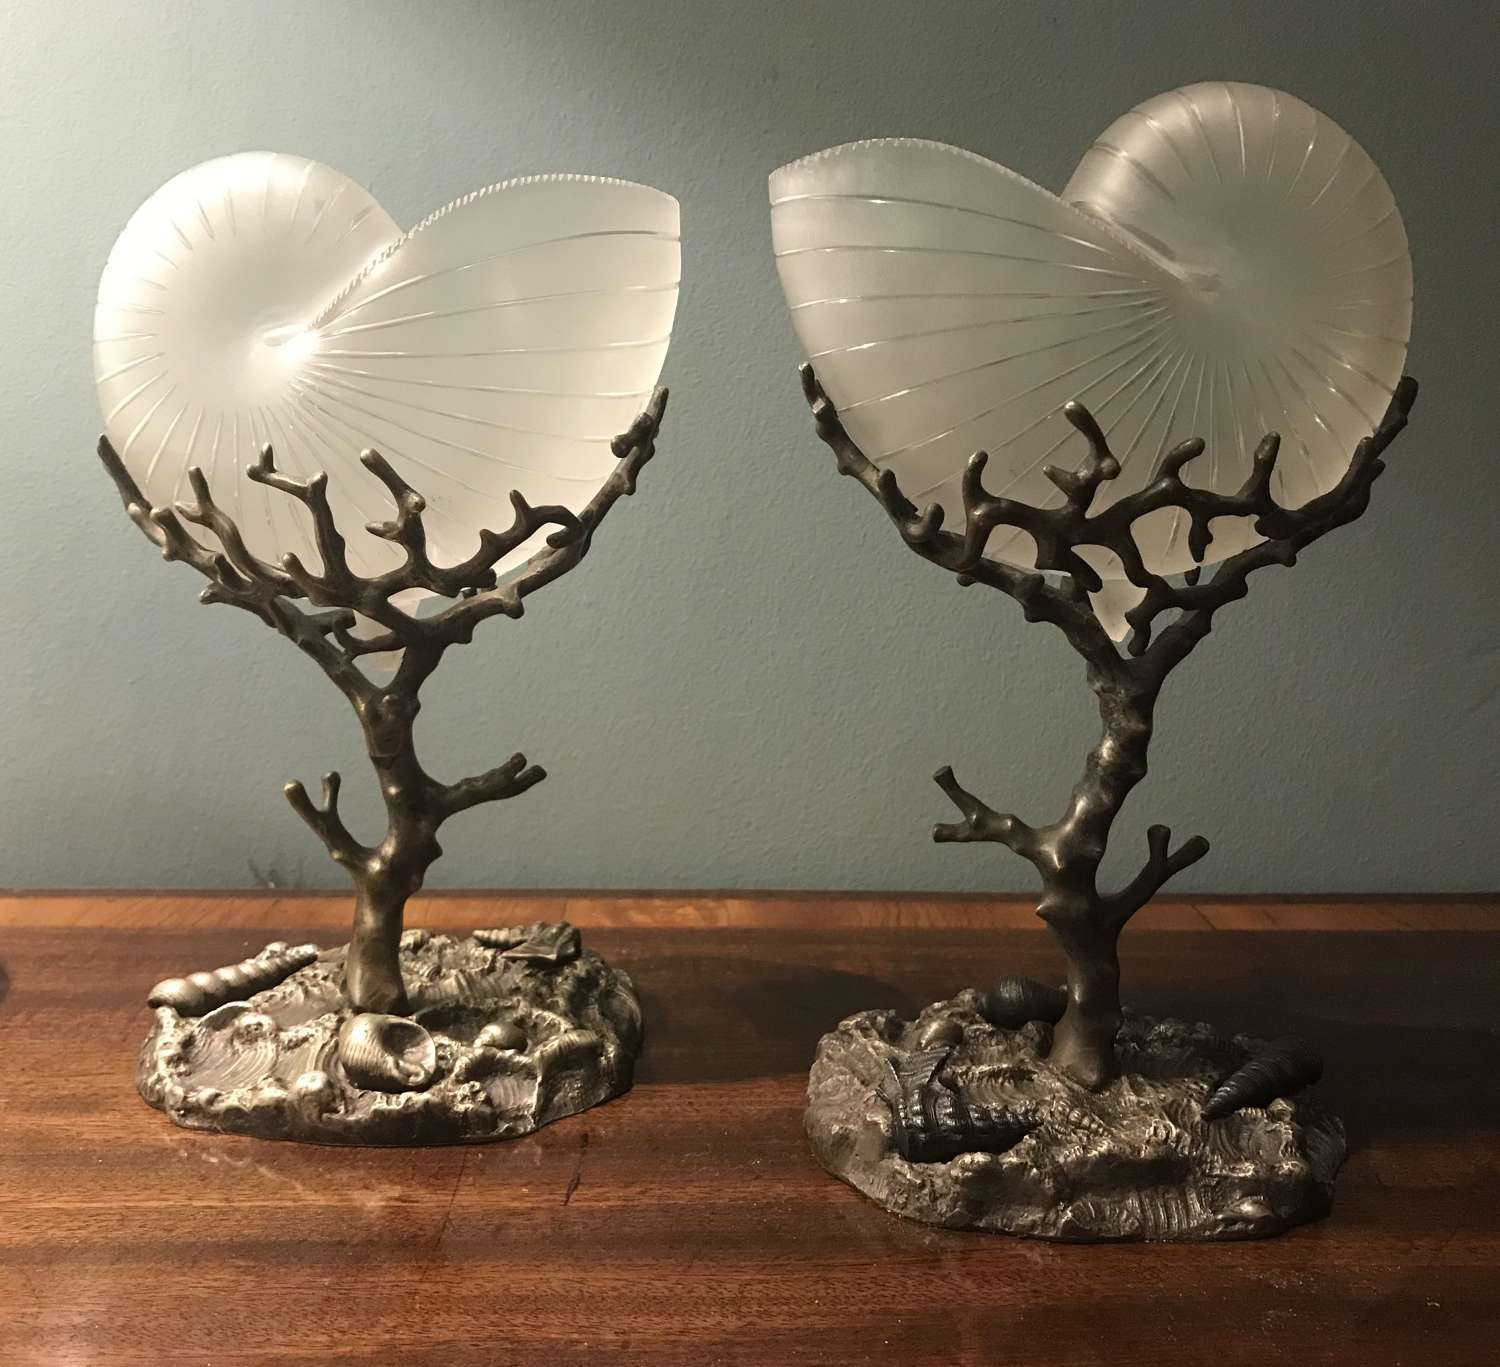 Pair of 19th century glass epergnes